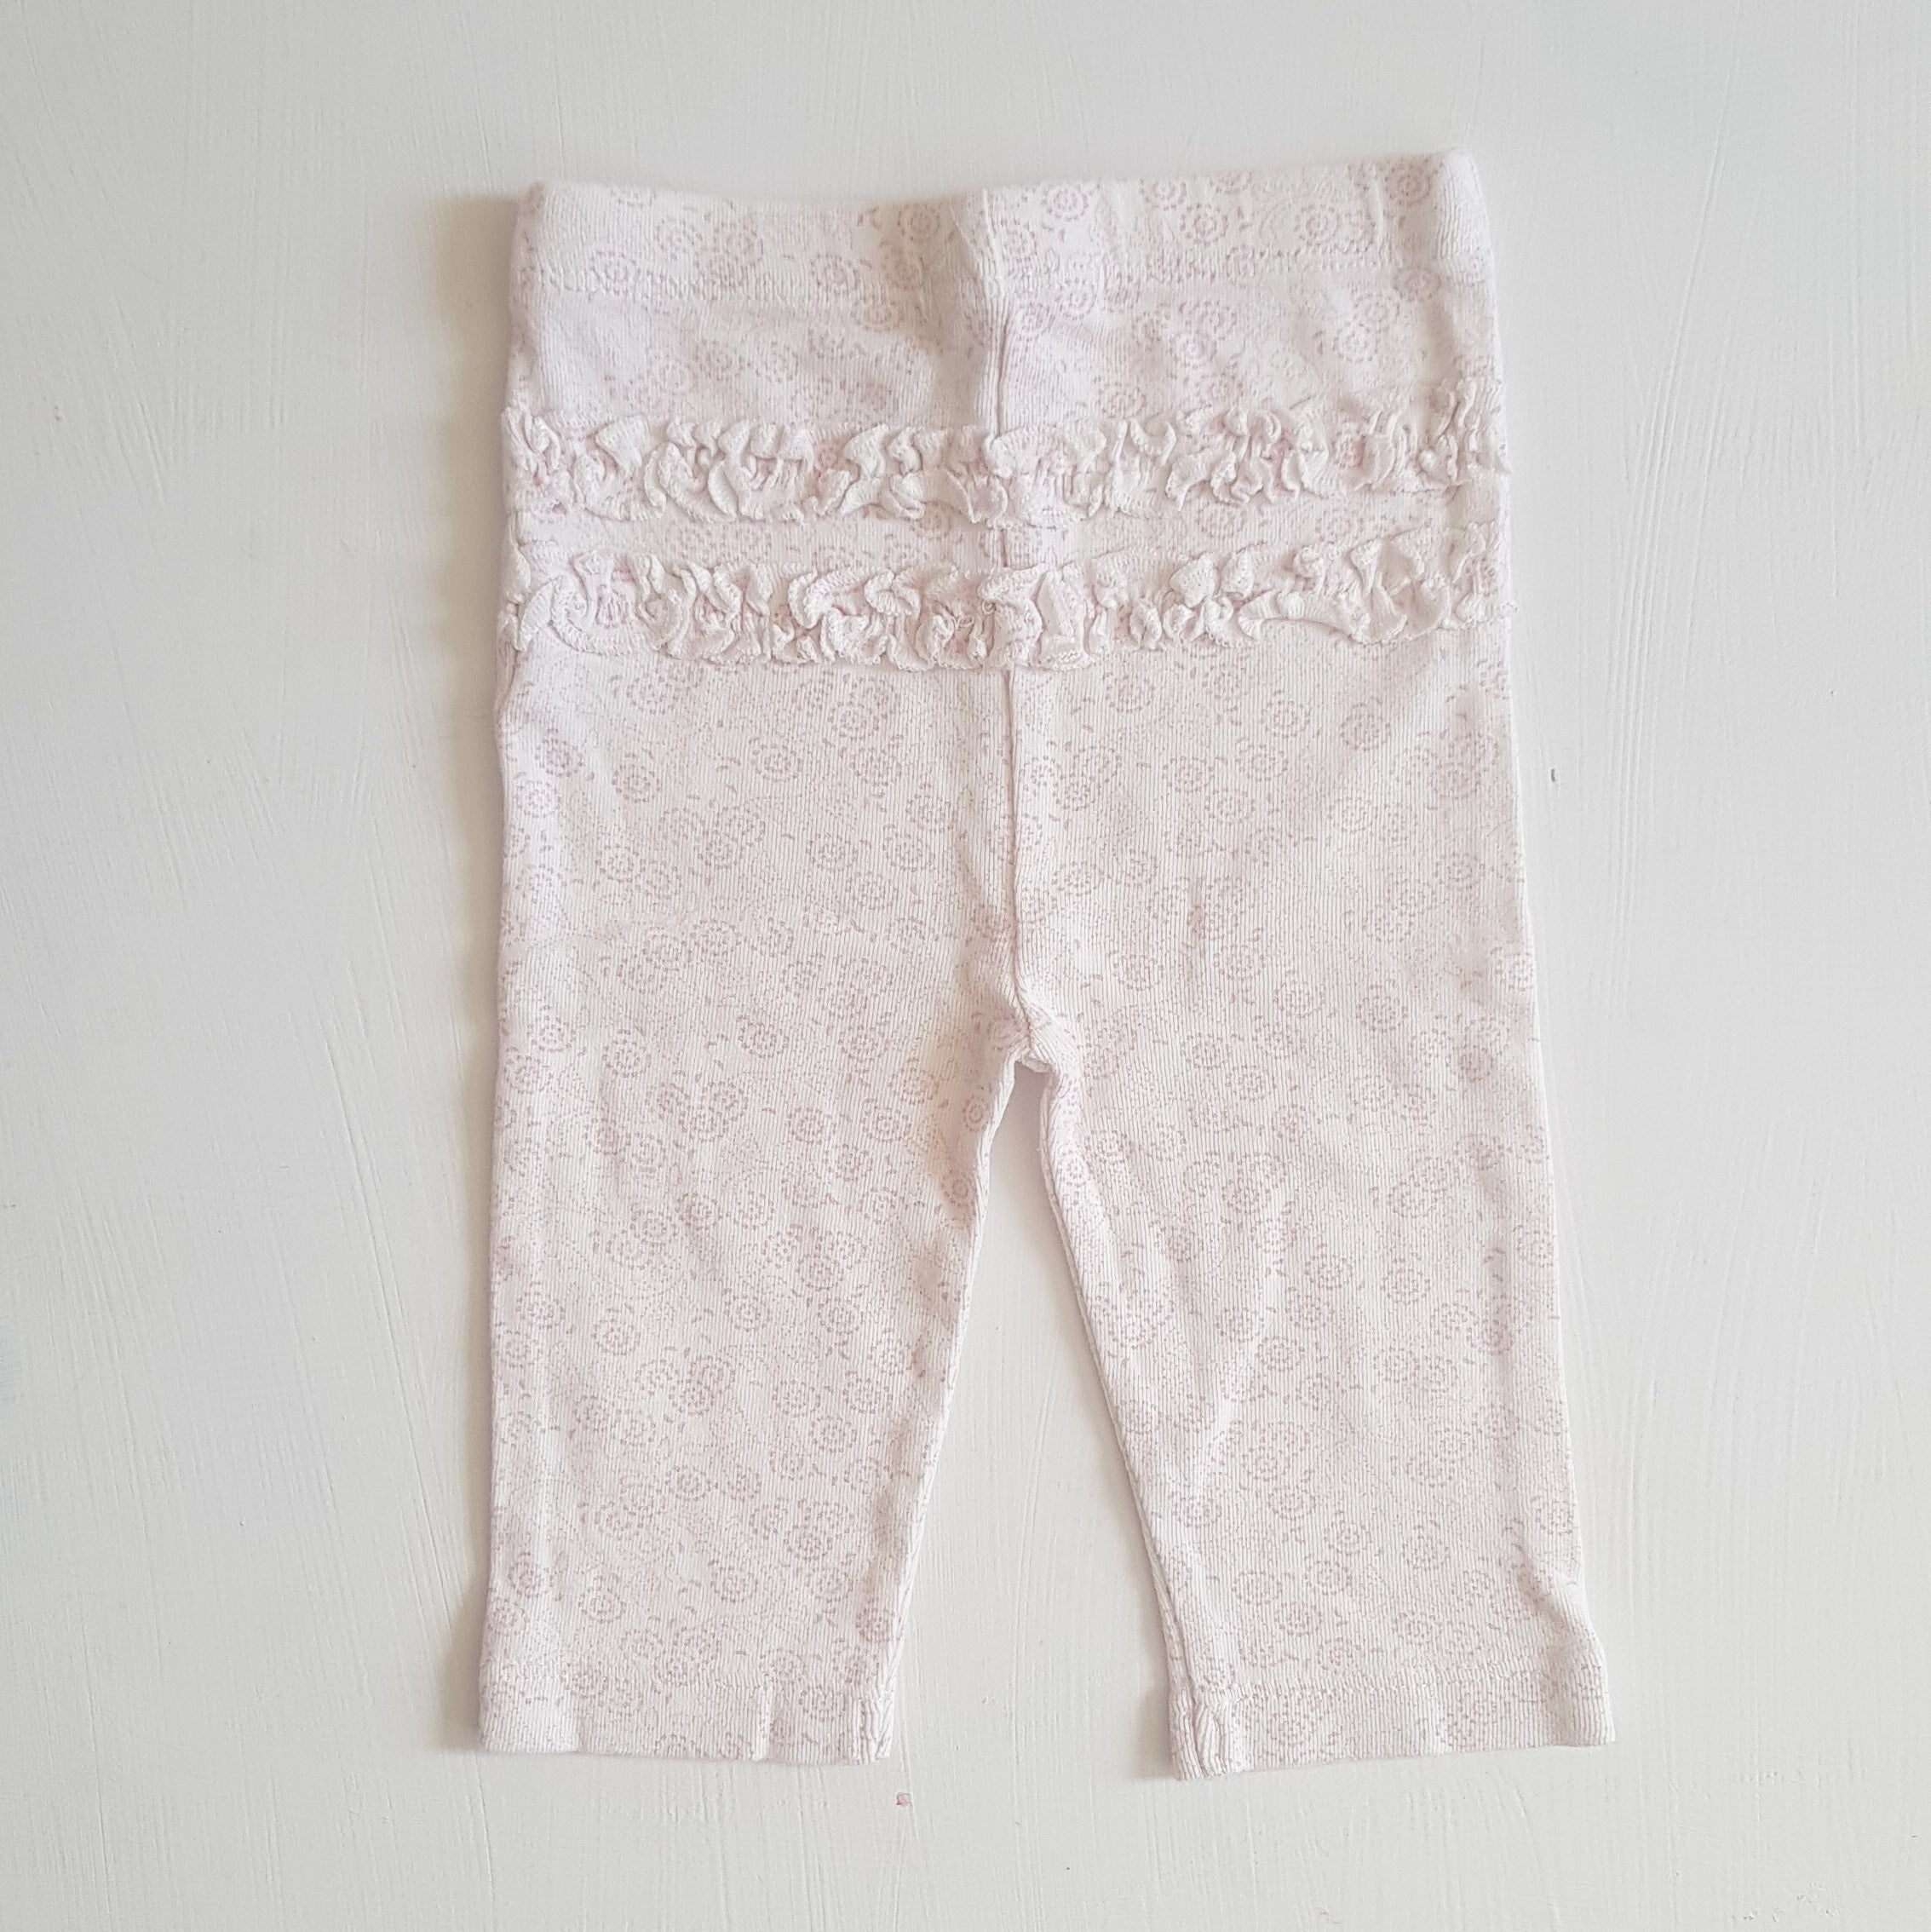 THRIFT Purebaby - Ruffle Bum Baby Leggings Size 00